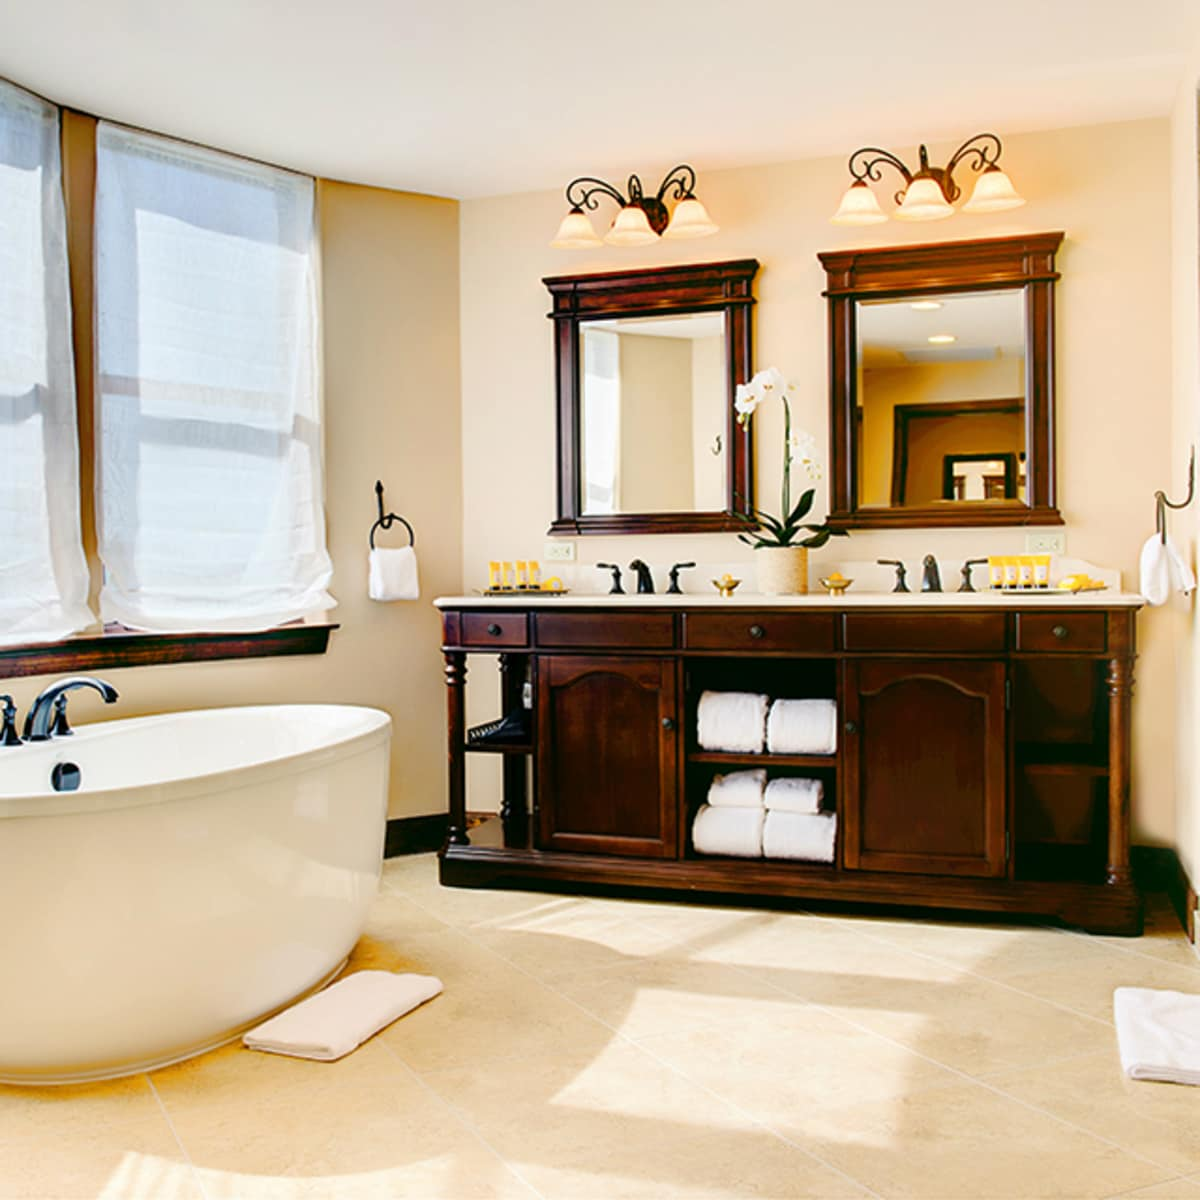 Hotel Granduca Austin opening 2015 bathroom